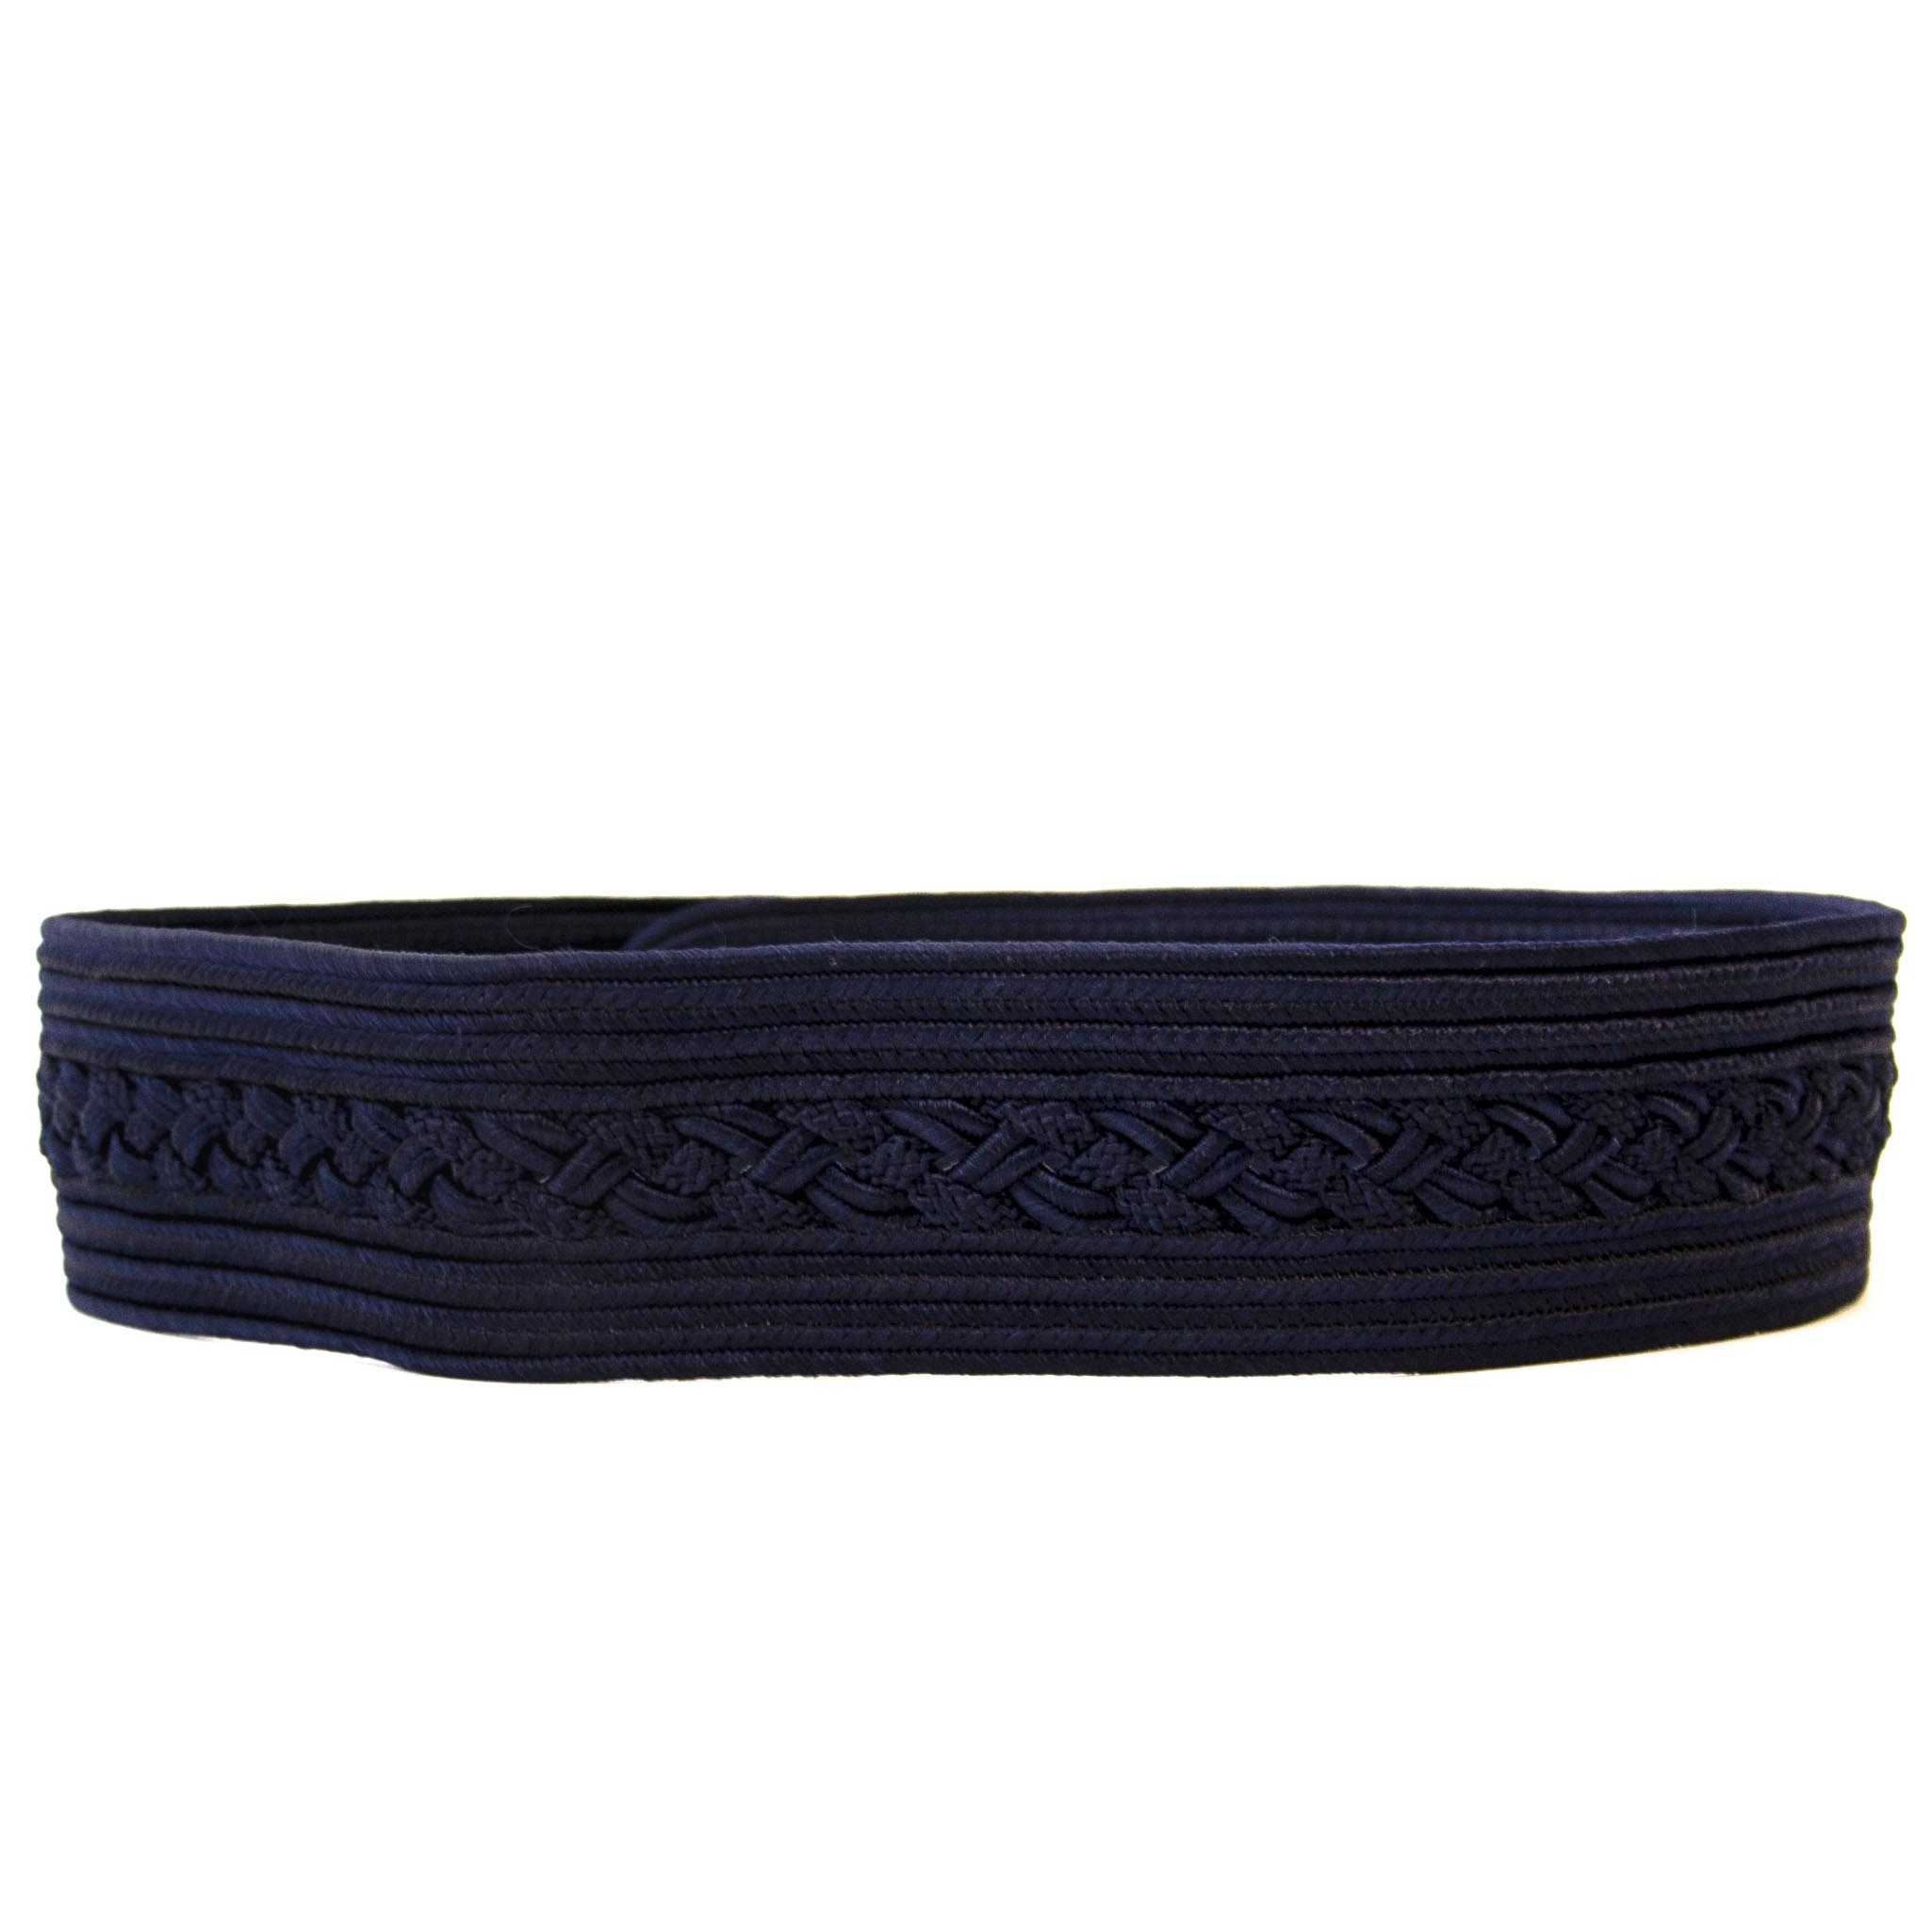 Buy this authentic second hand vintage Nina Ricci Blue Woven Belt at online webshop LabelLOV. Safe and secure shopping. Koop authentieke tweedehands vintage Nina Ricci Blue Woven Belt bij online webshop LabelLOV.